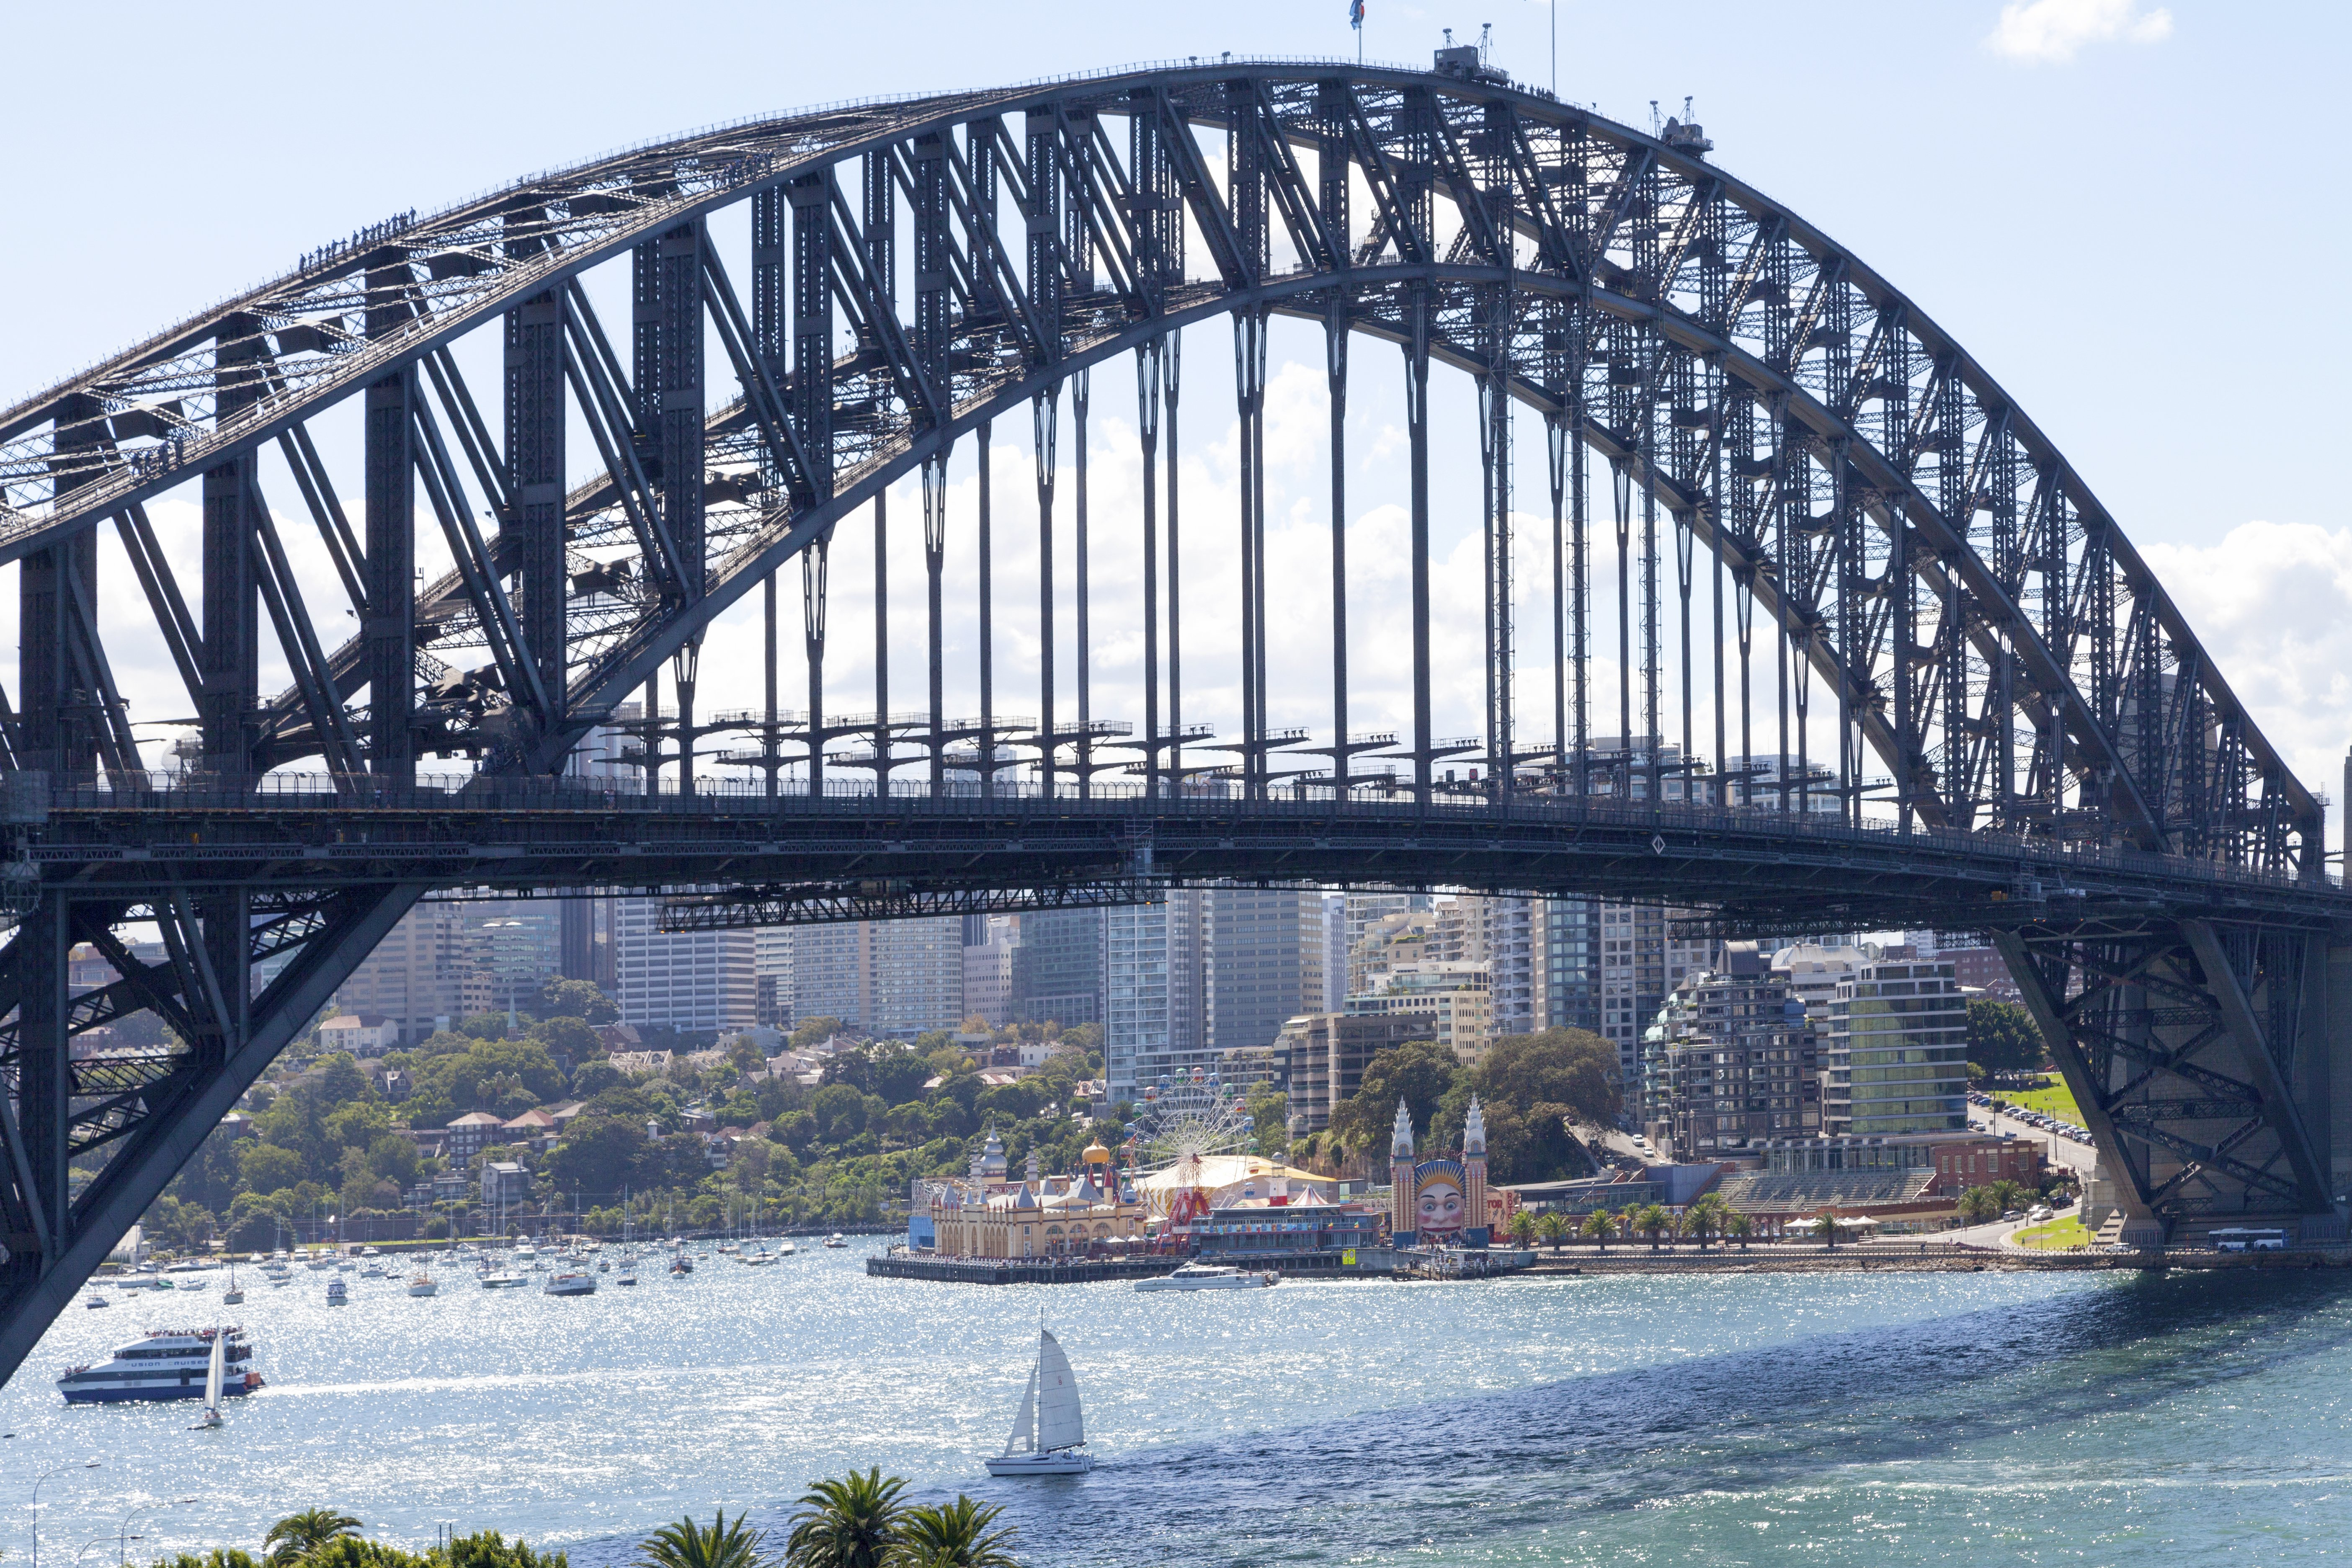 Sydney Harbour Bridge: the 2nd longest bridge in Australia